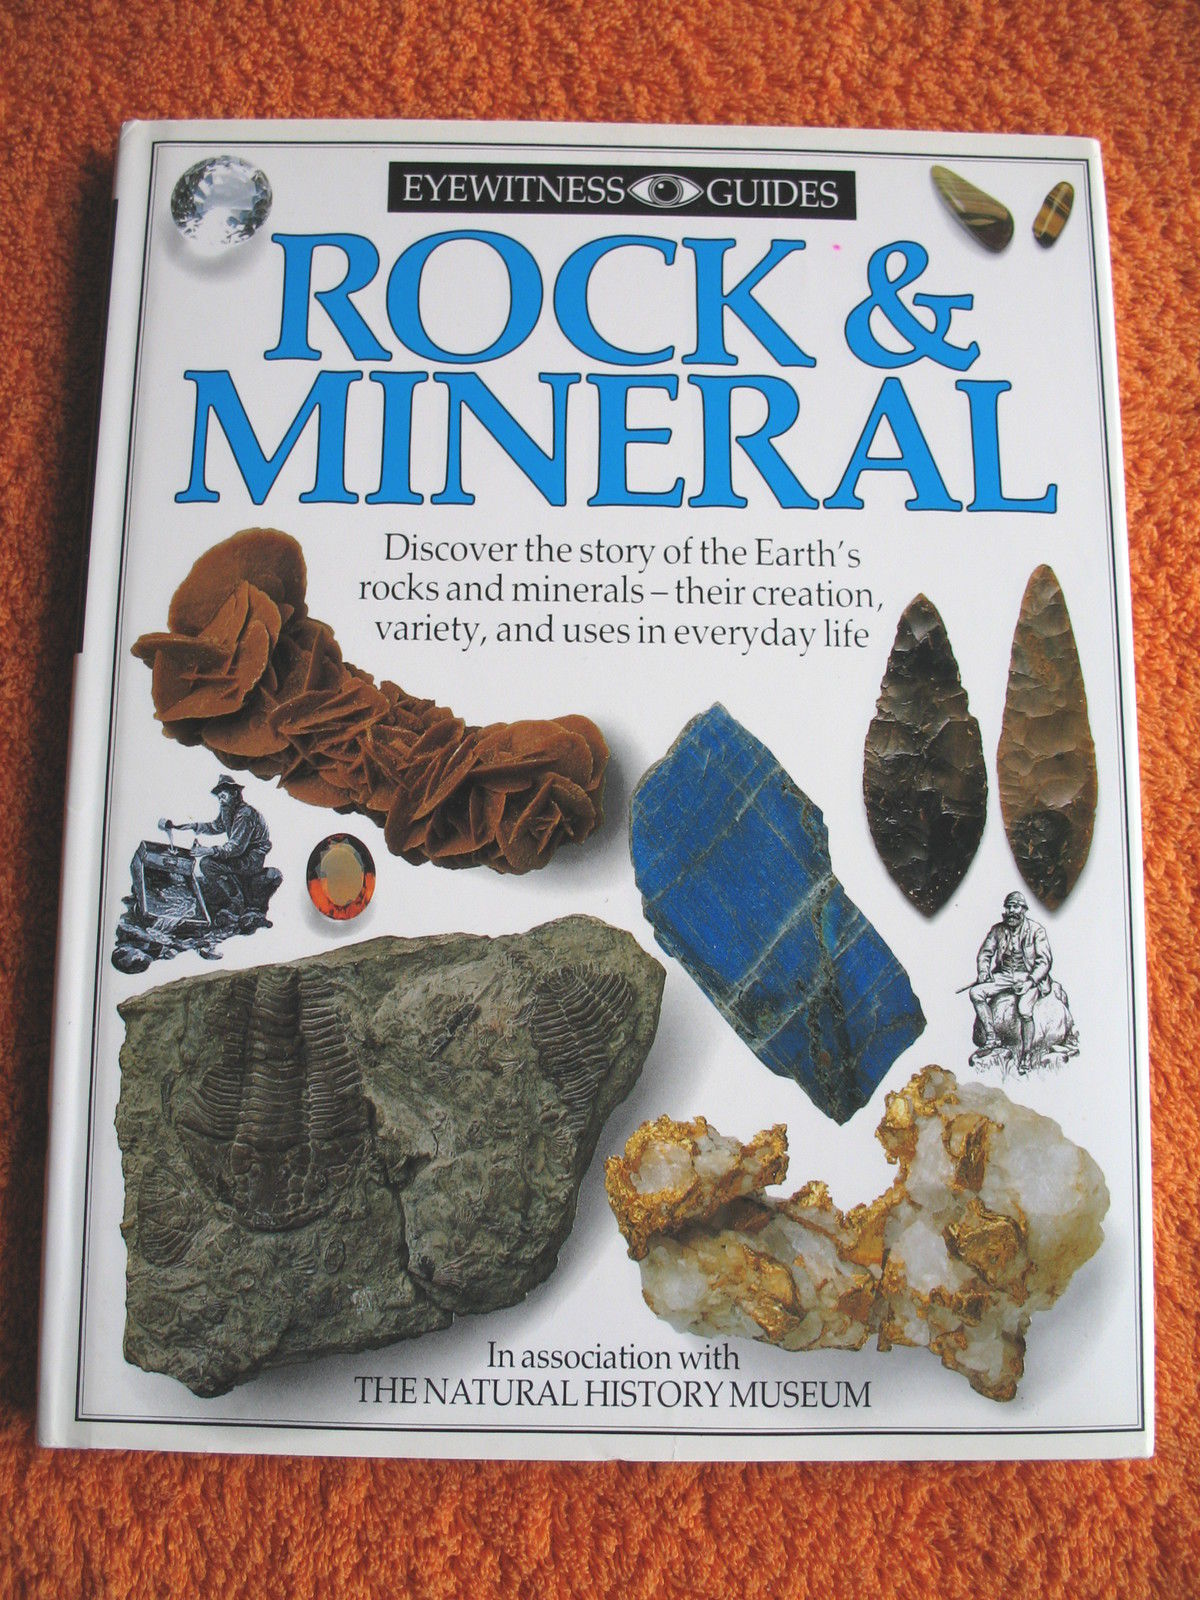 Eyewitness guides Rock & Mineral